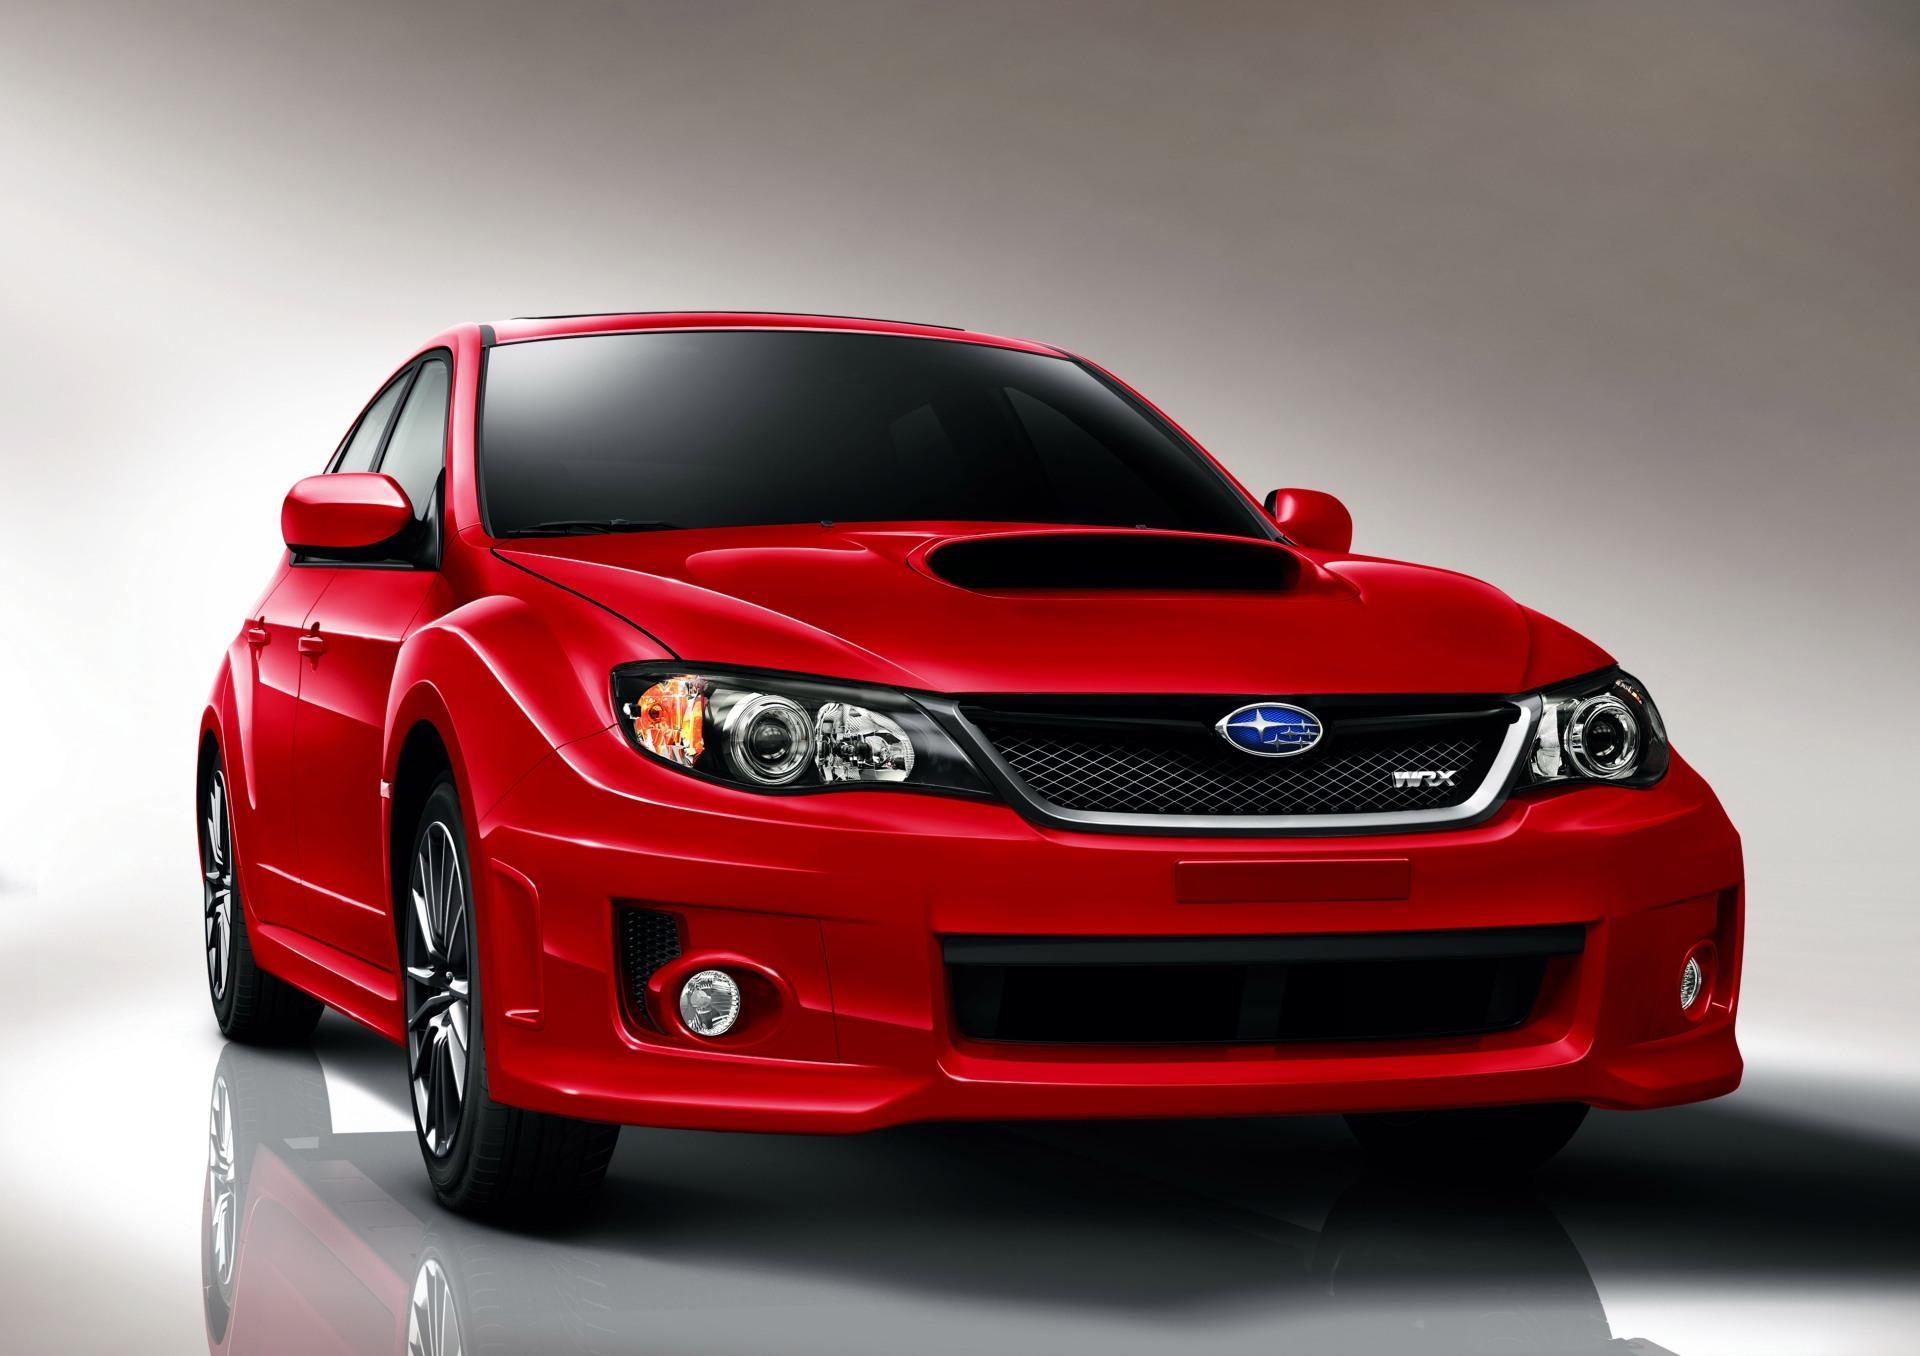 2011 subaru impreza wrx image. Black Bedroom Furniture Sets. Home Design Ideas